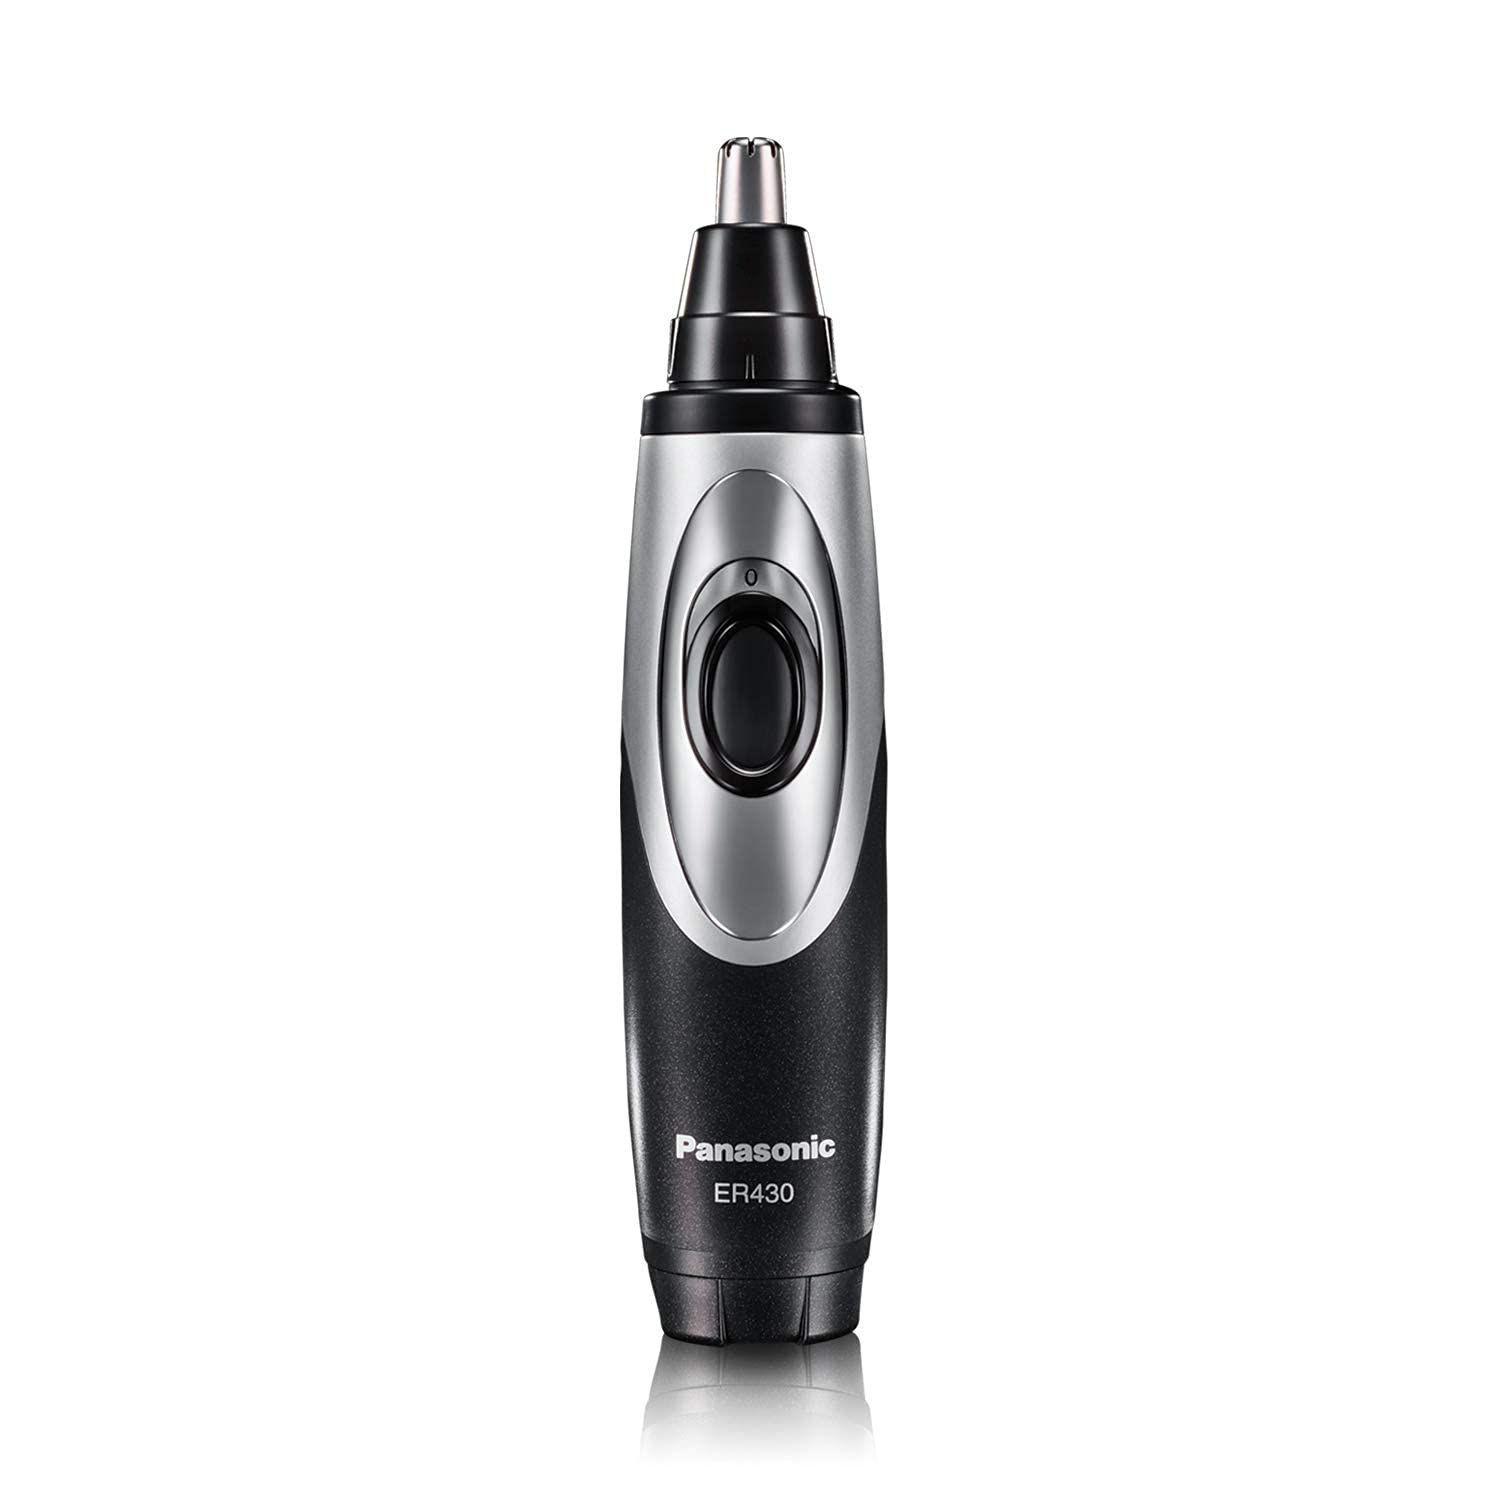 Panasonic Nose Hair Trimmer ER430K Rare and Vacuum Ear Max 51% OFF